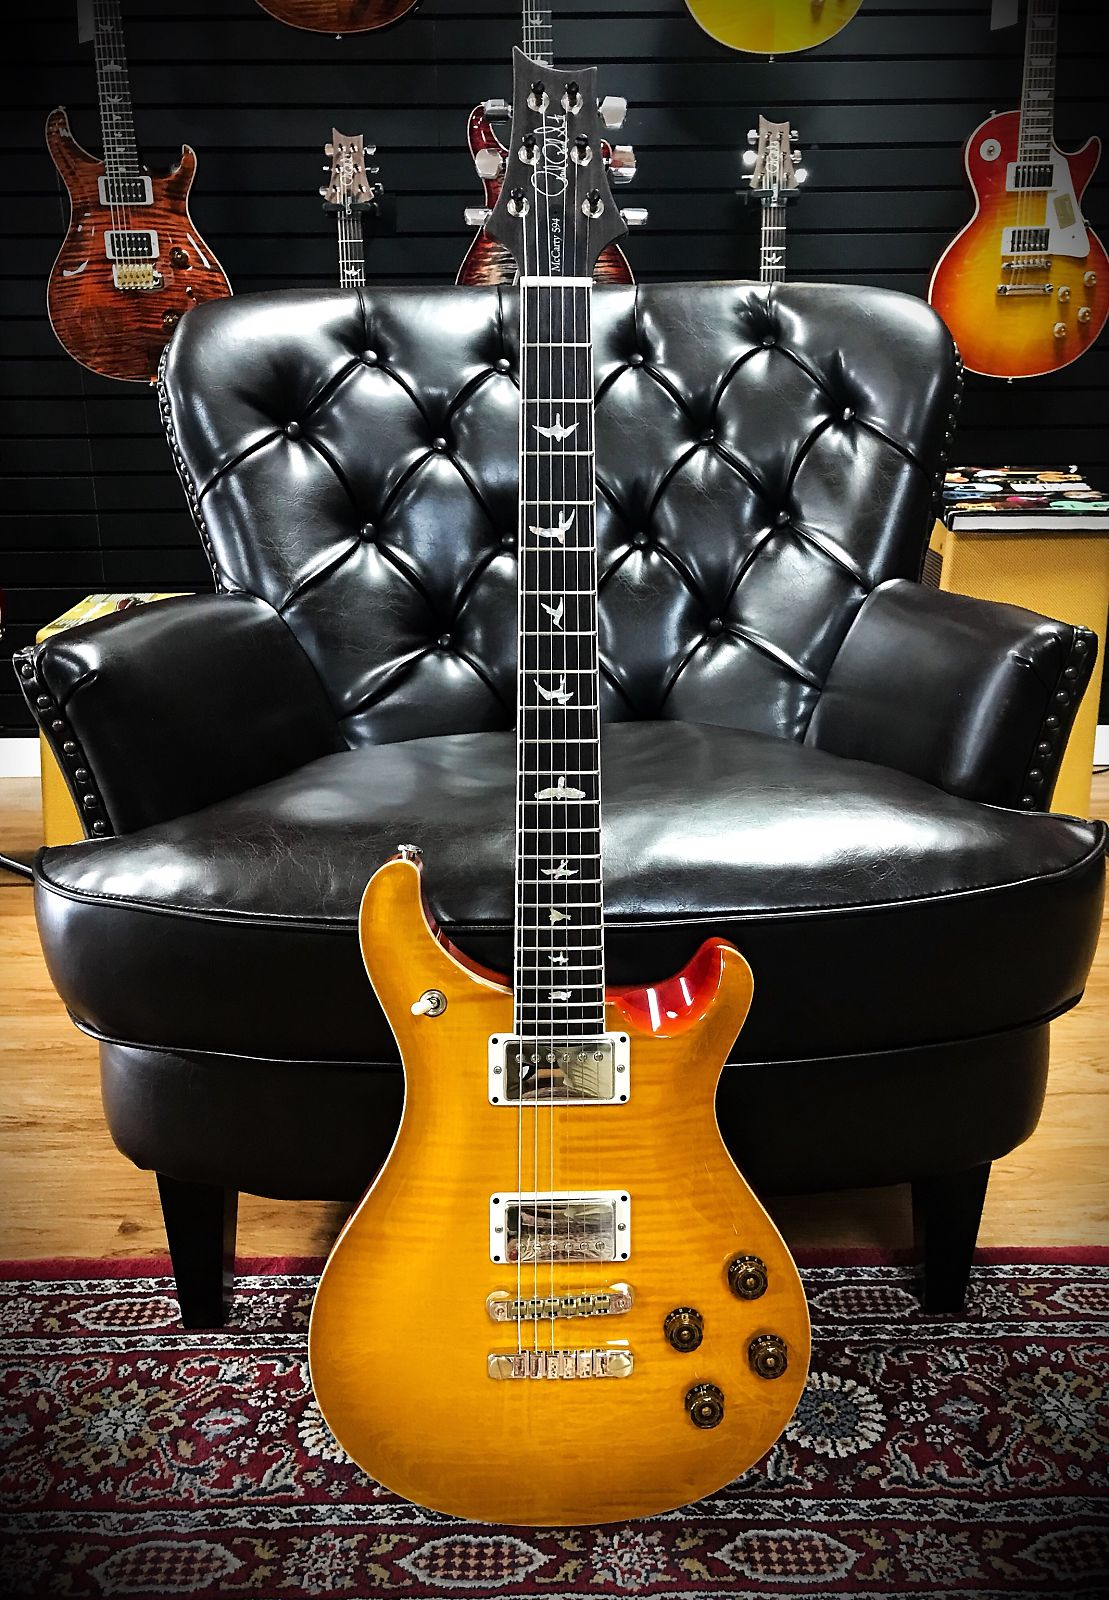 Paul Reed Smith McCarty 594 2018 Figured Top Pattern Neck McCarty sunburst